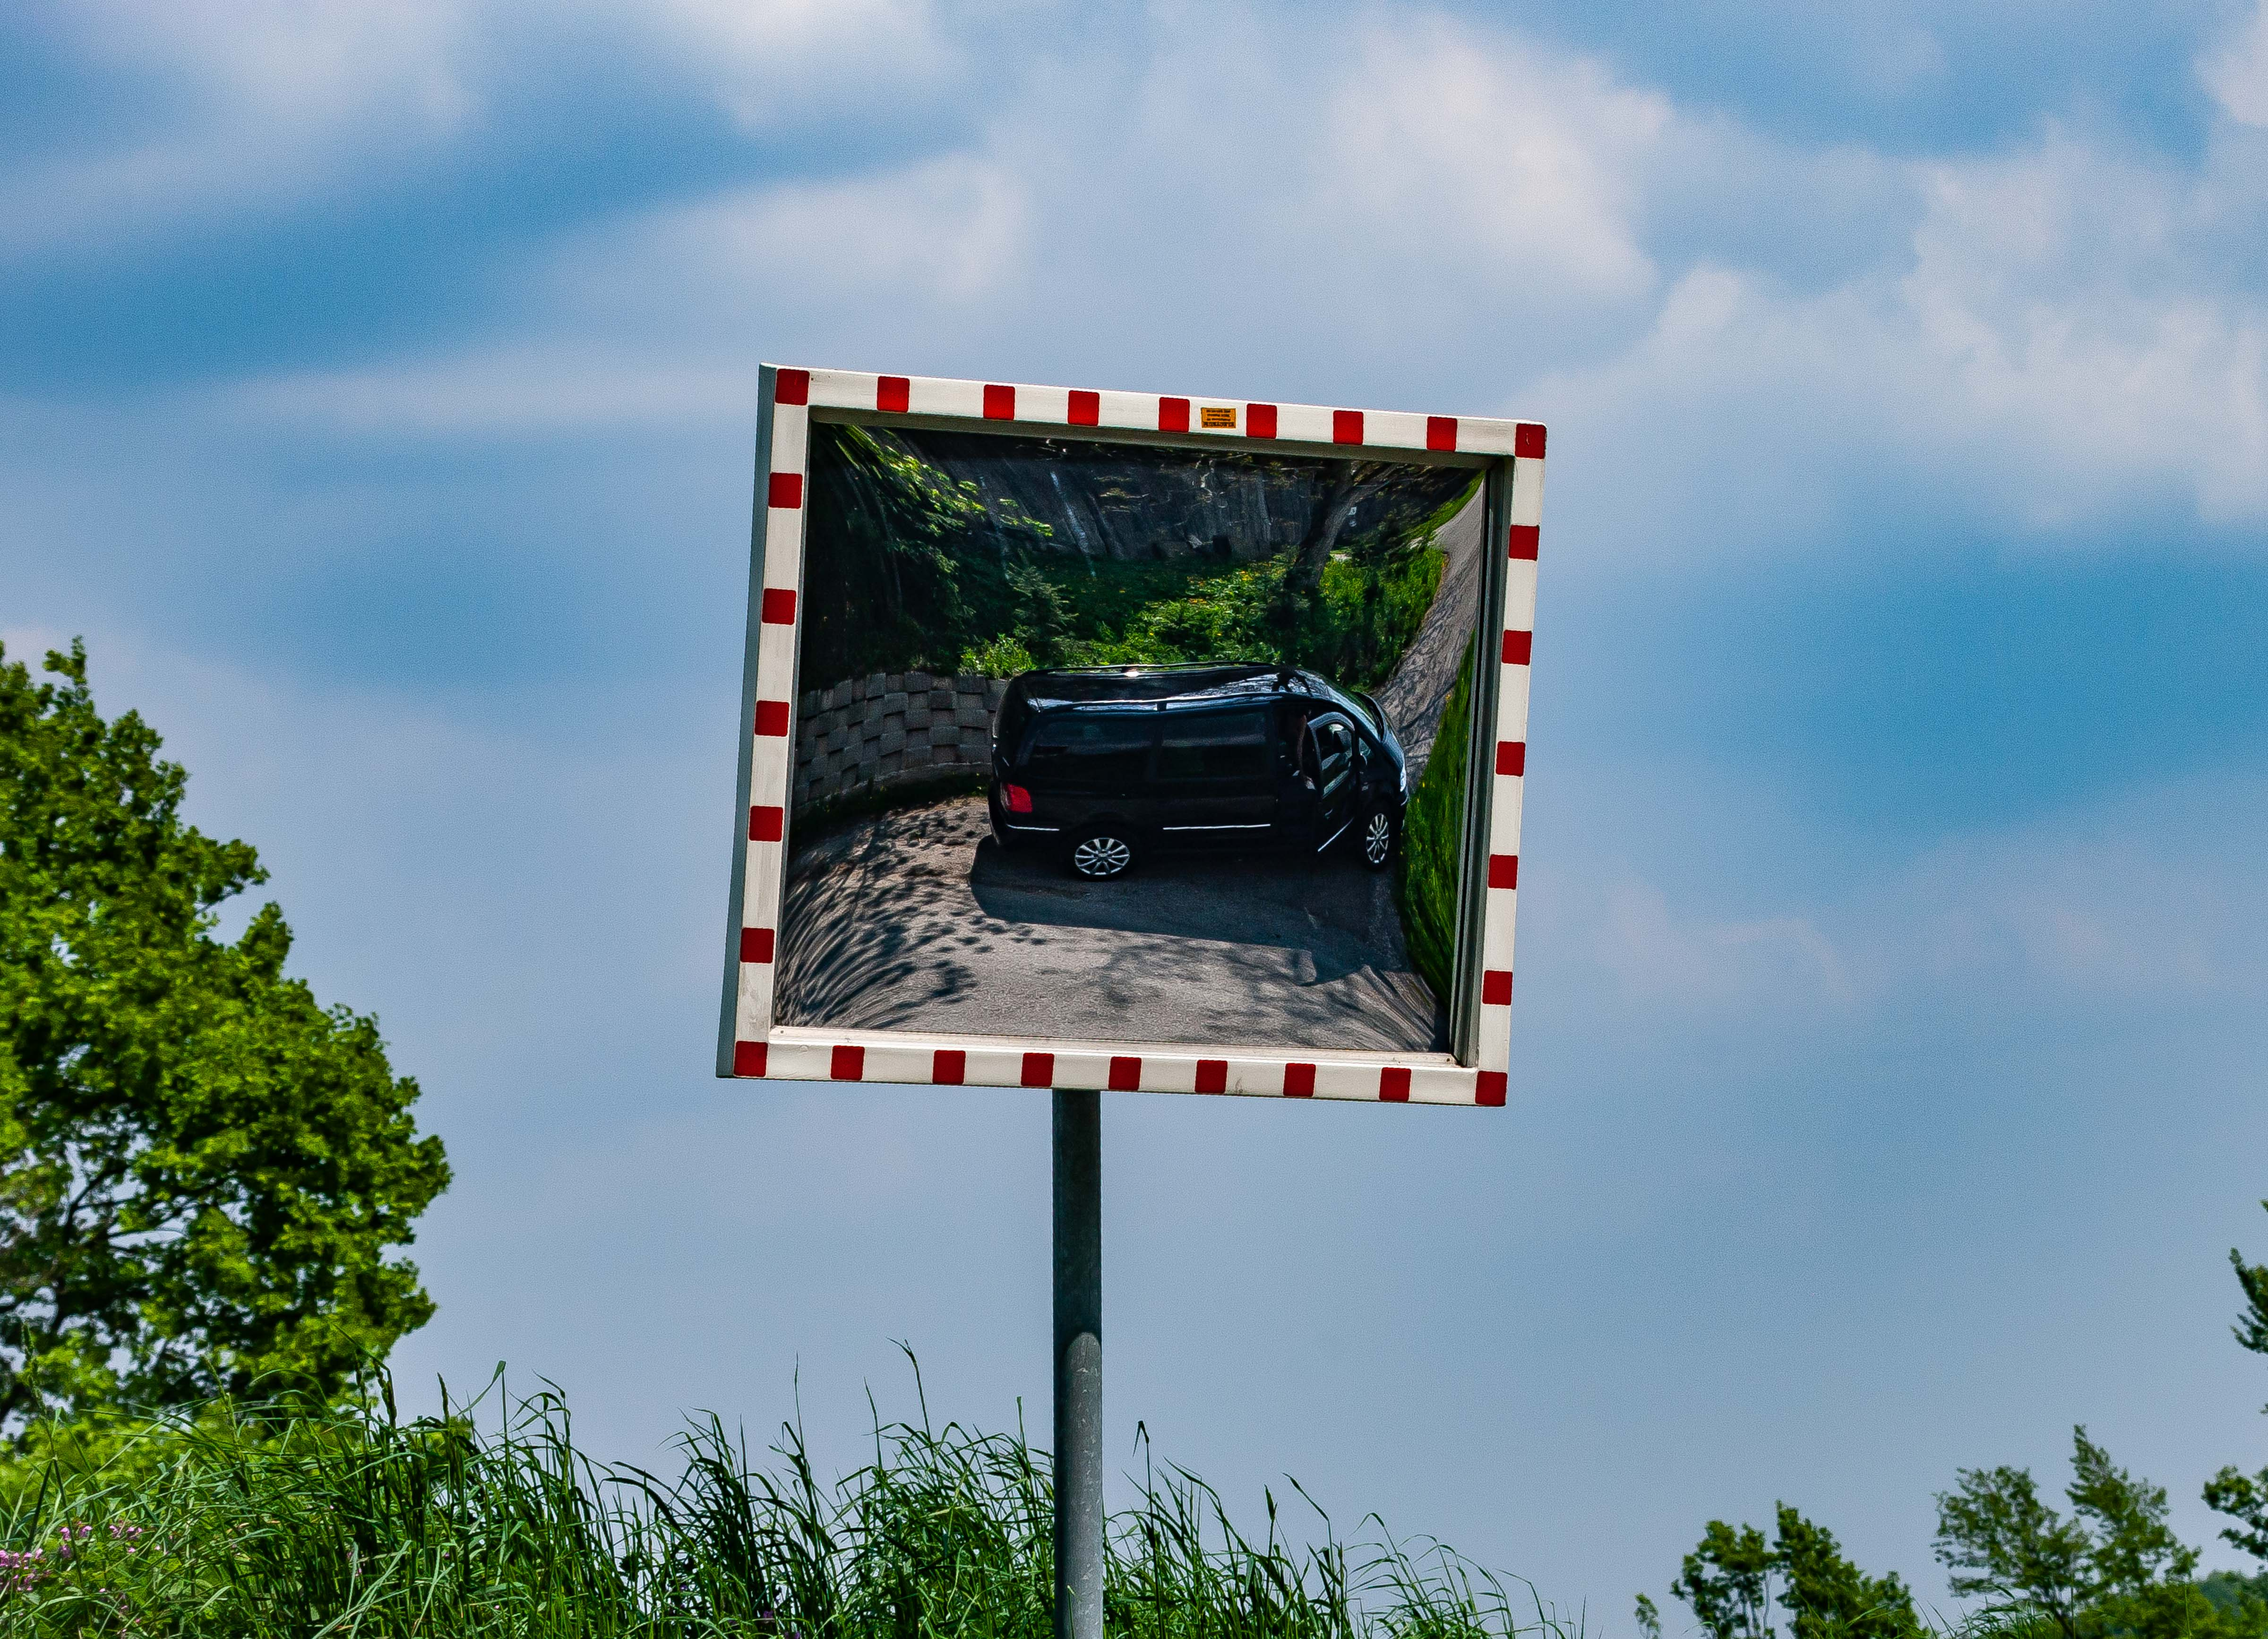 Slovenia, Sentilj Prov, Car In Mirror, 2006, IMG 4778